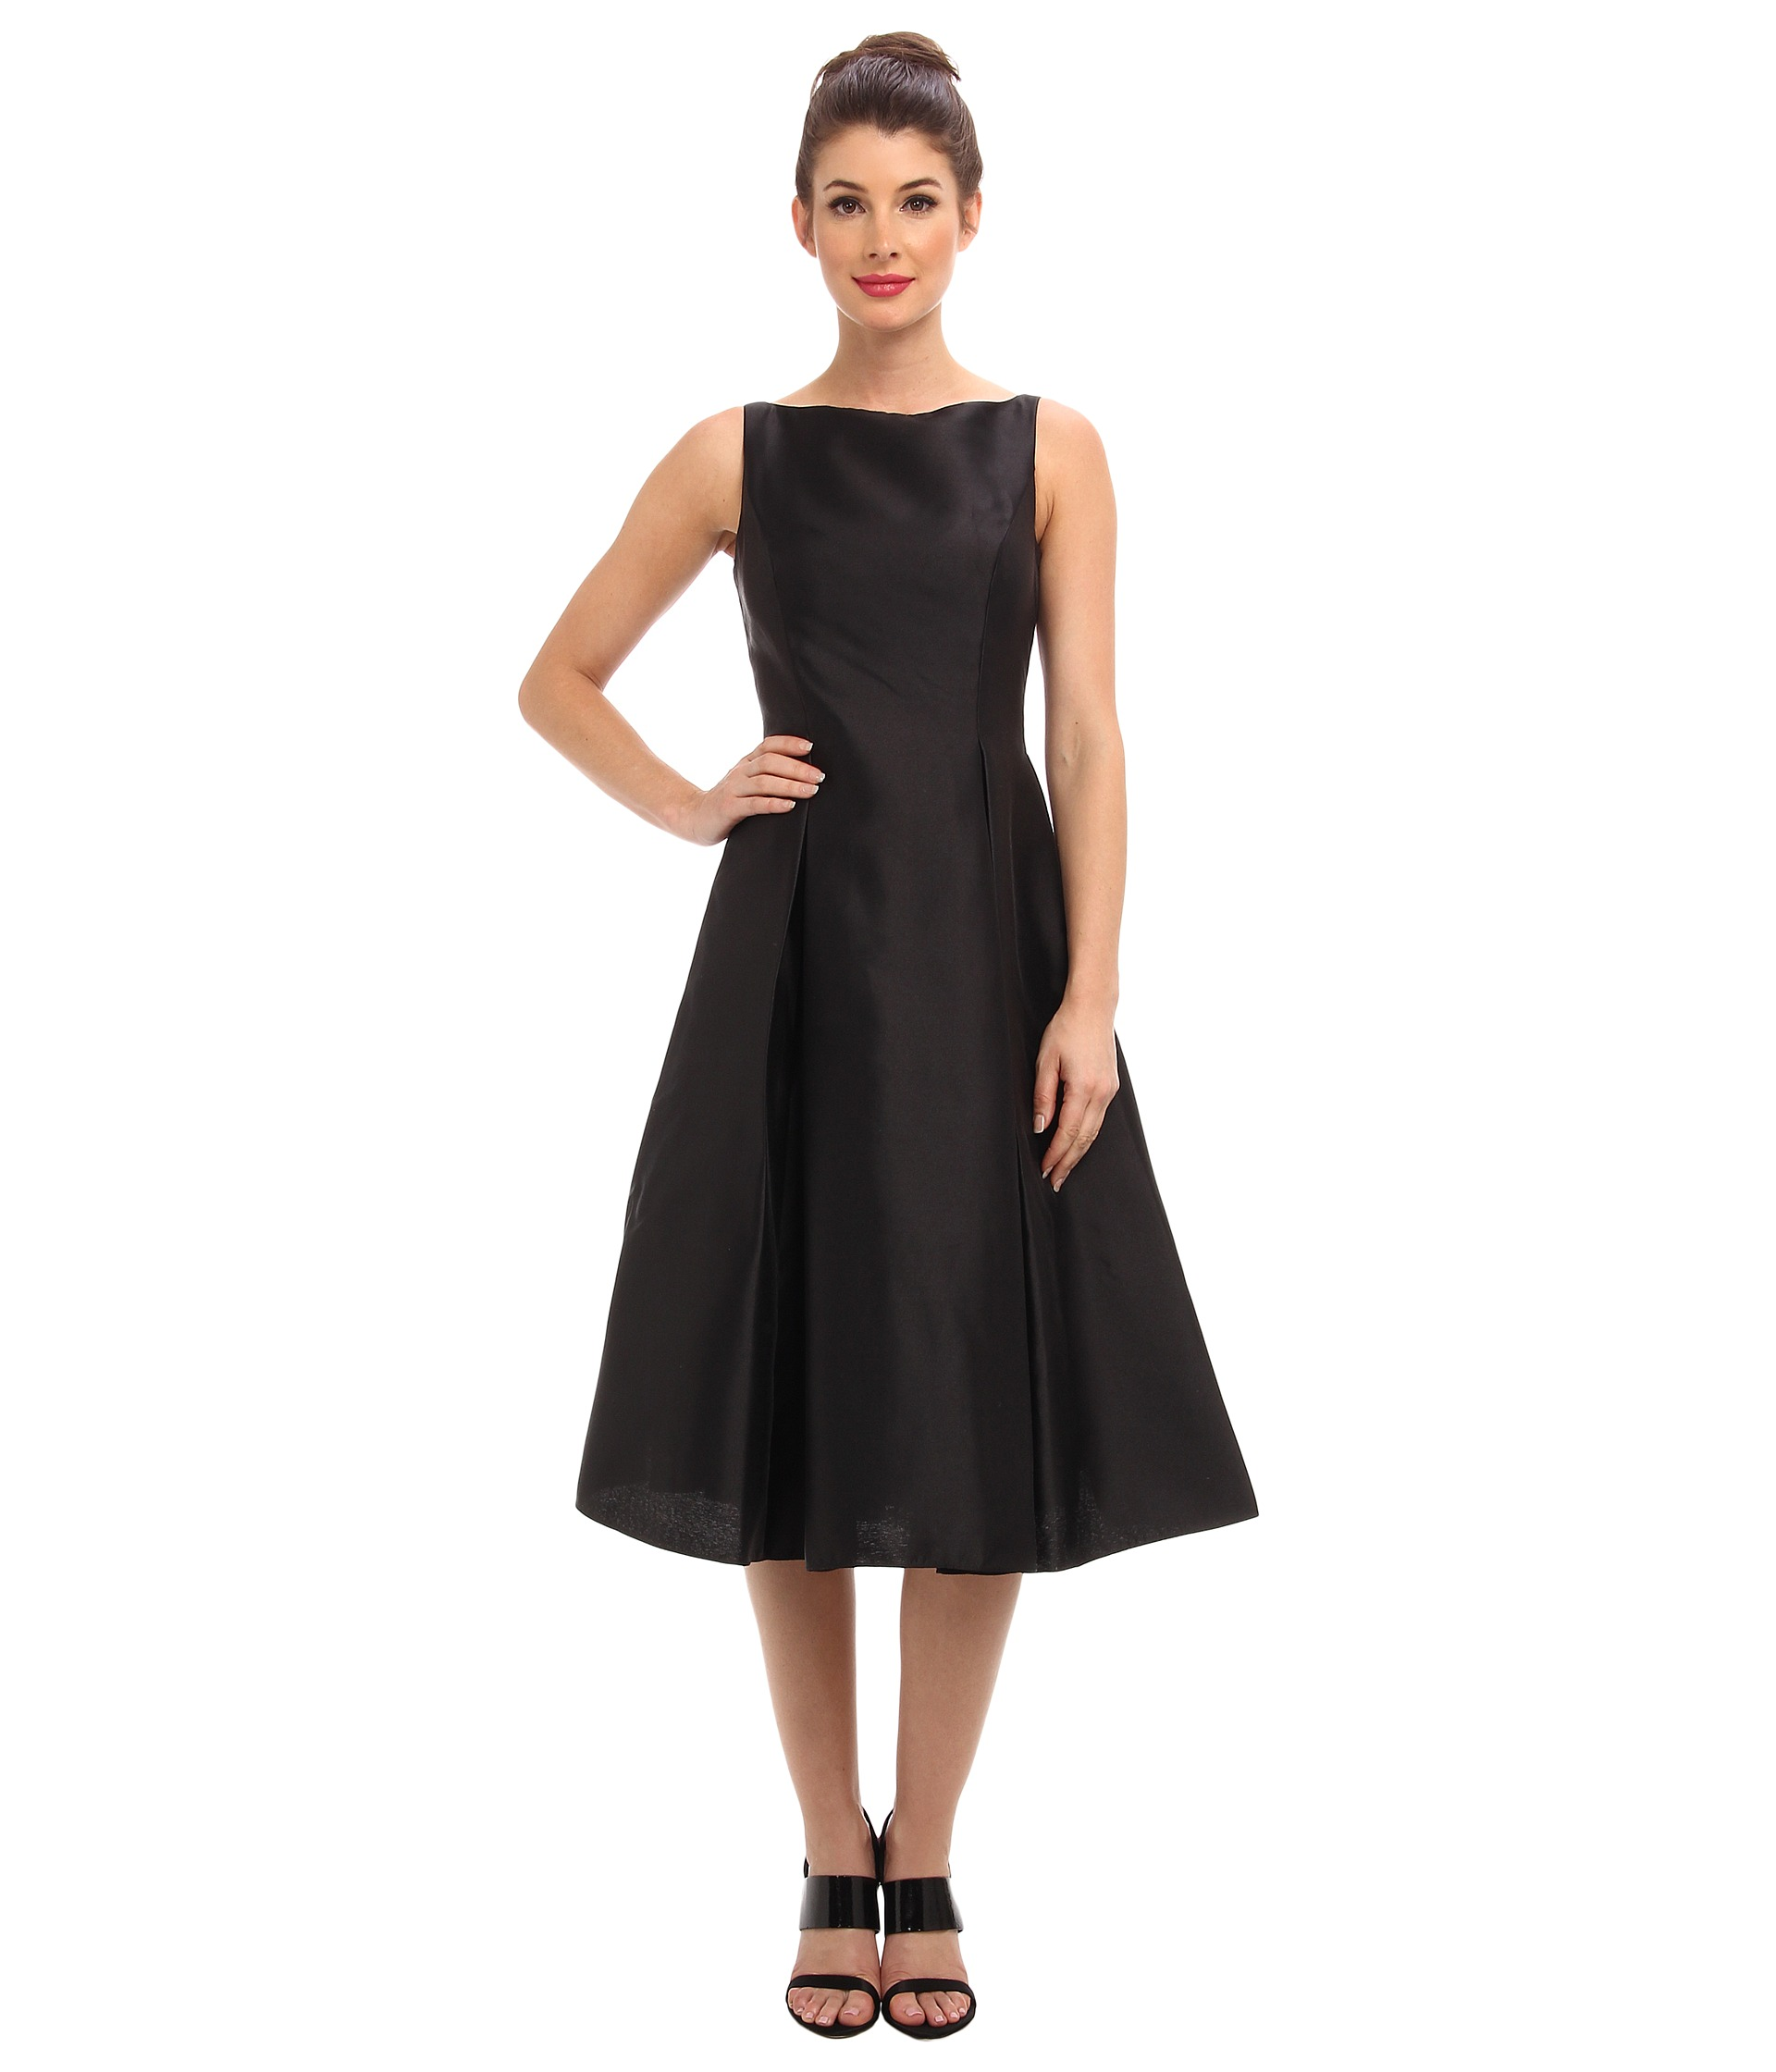 Adrianna Papell Sleeveless Tea Length Dress Black- Black - Shipped ...